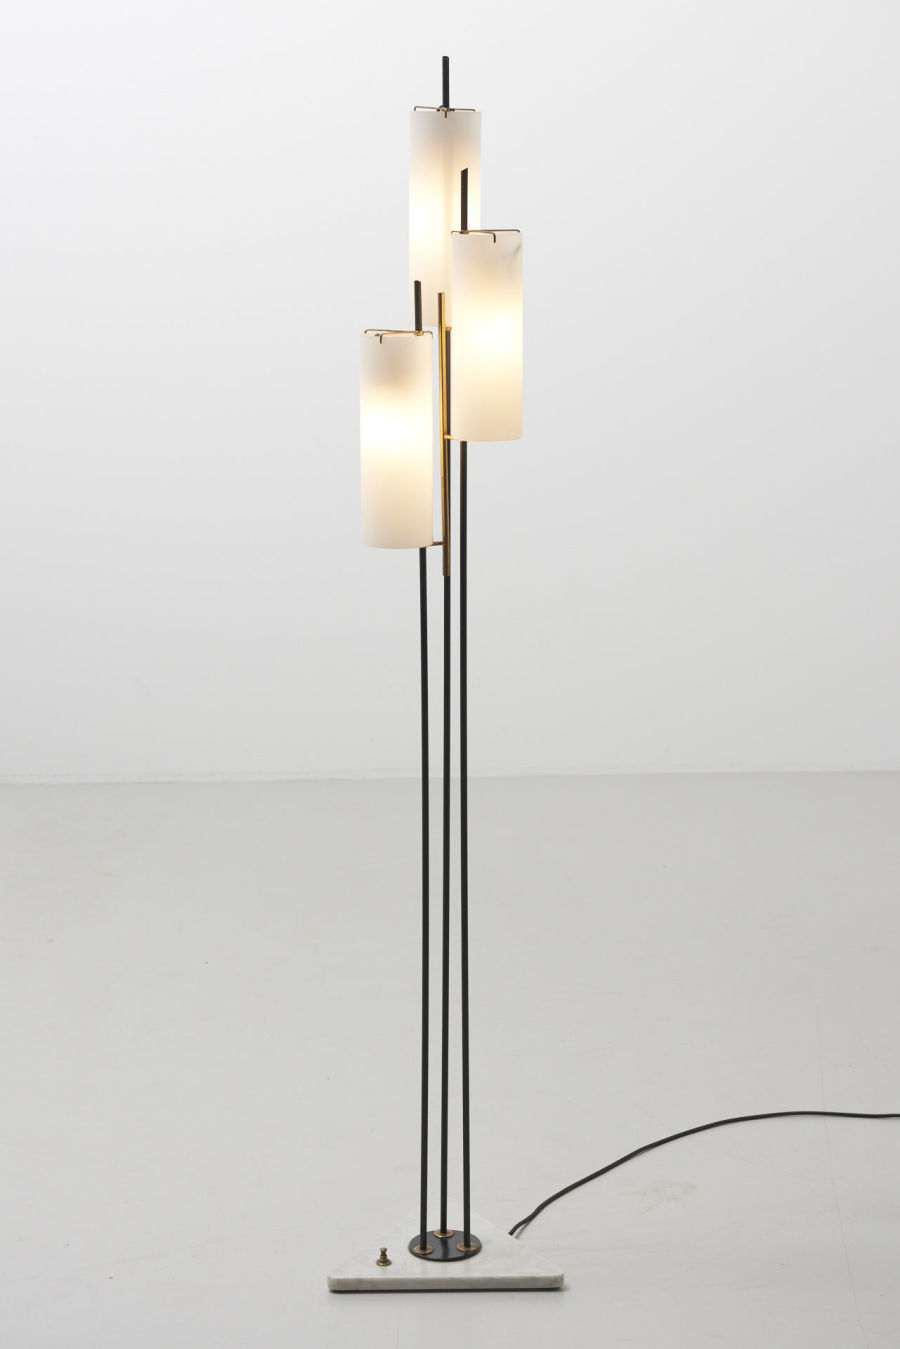 modestfurniture-vintage-1893-floor-lamp-stilnovo-marble-foot08